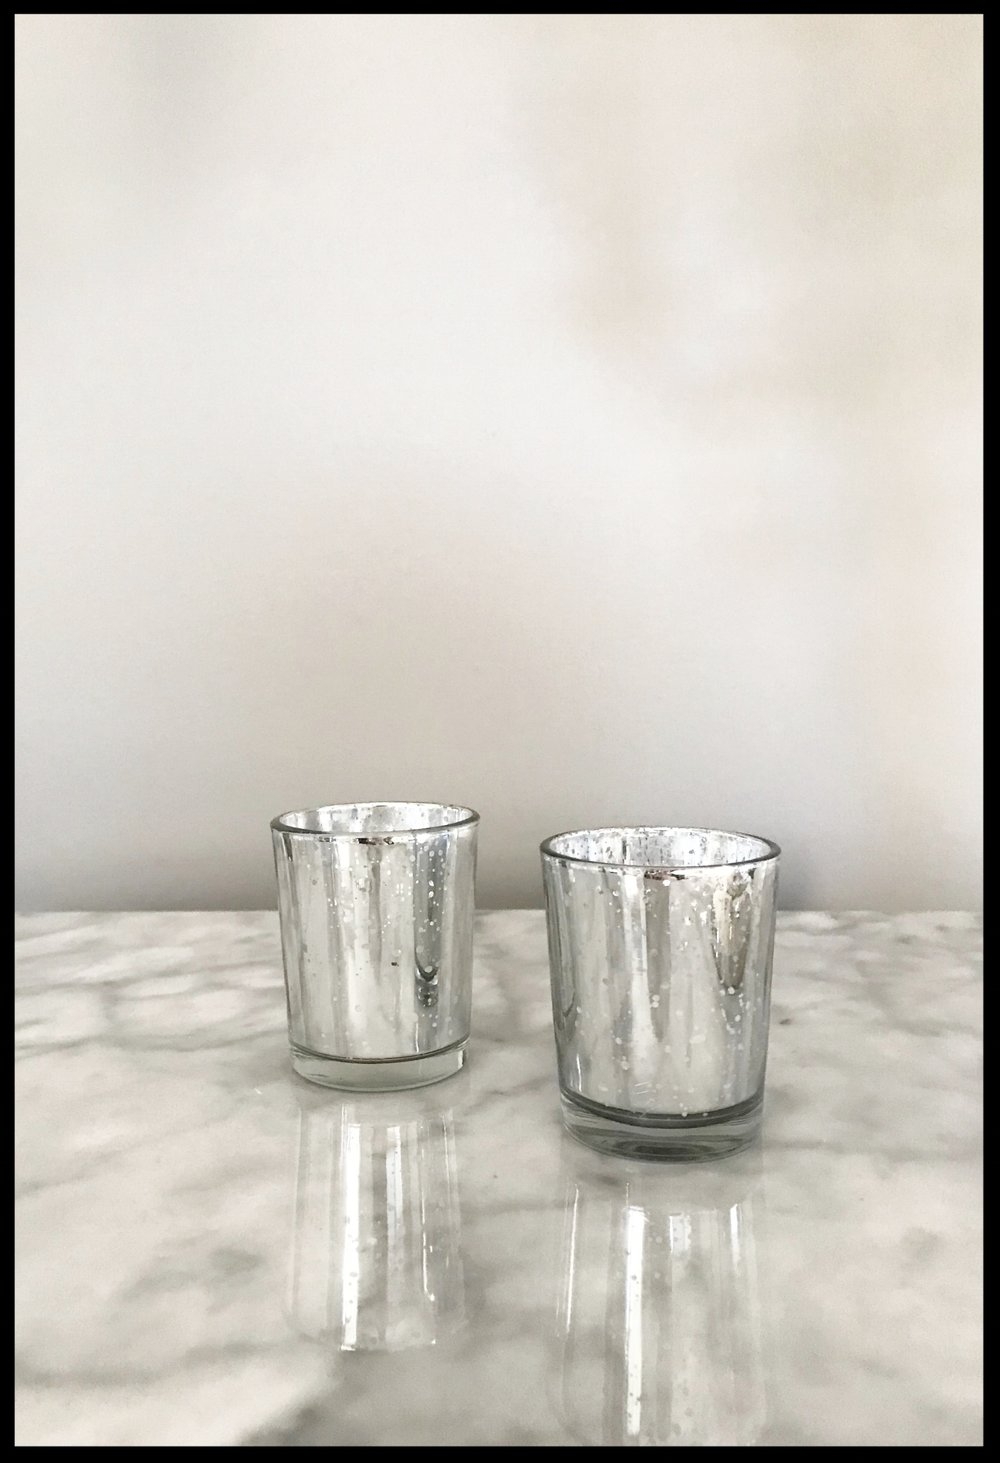 Silver Mercury Votive Holder